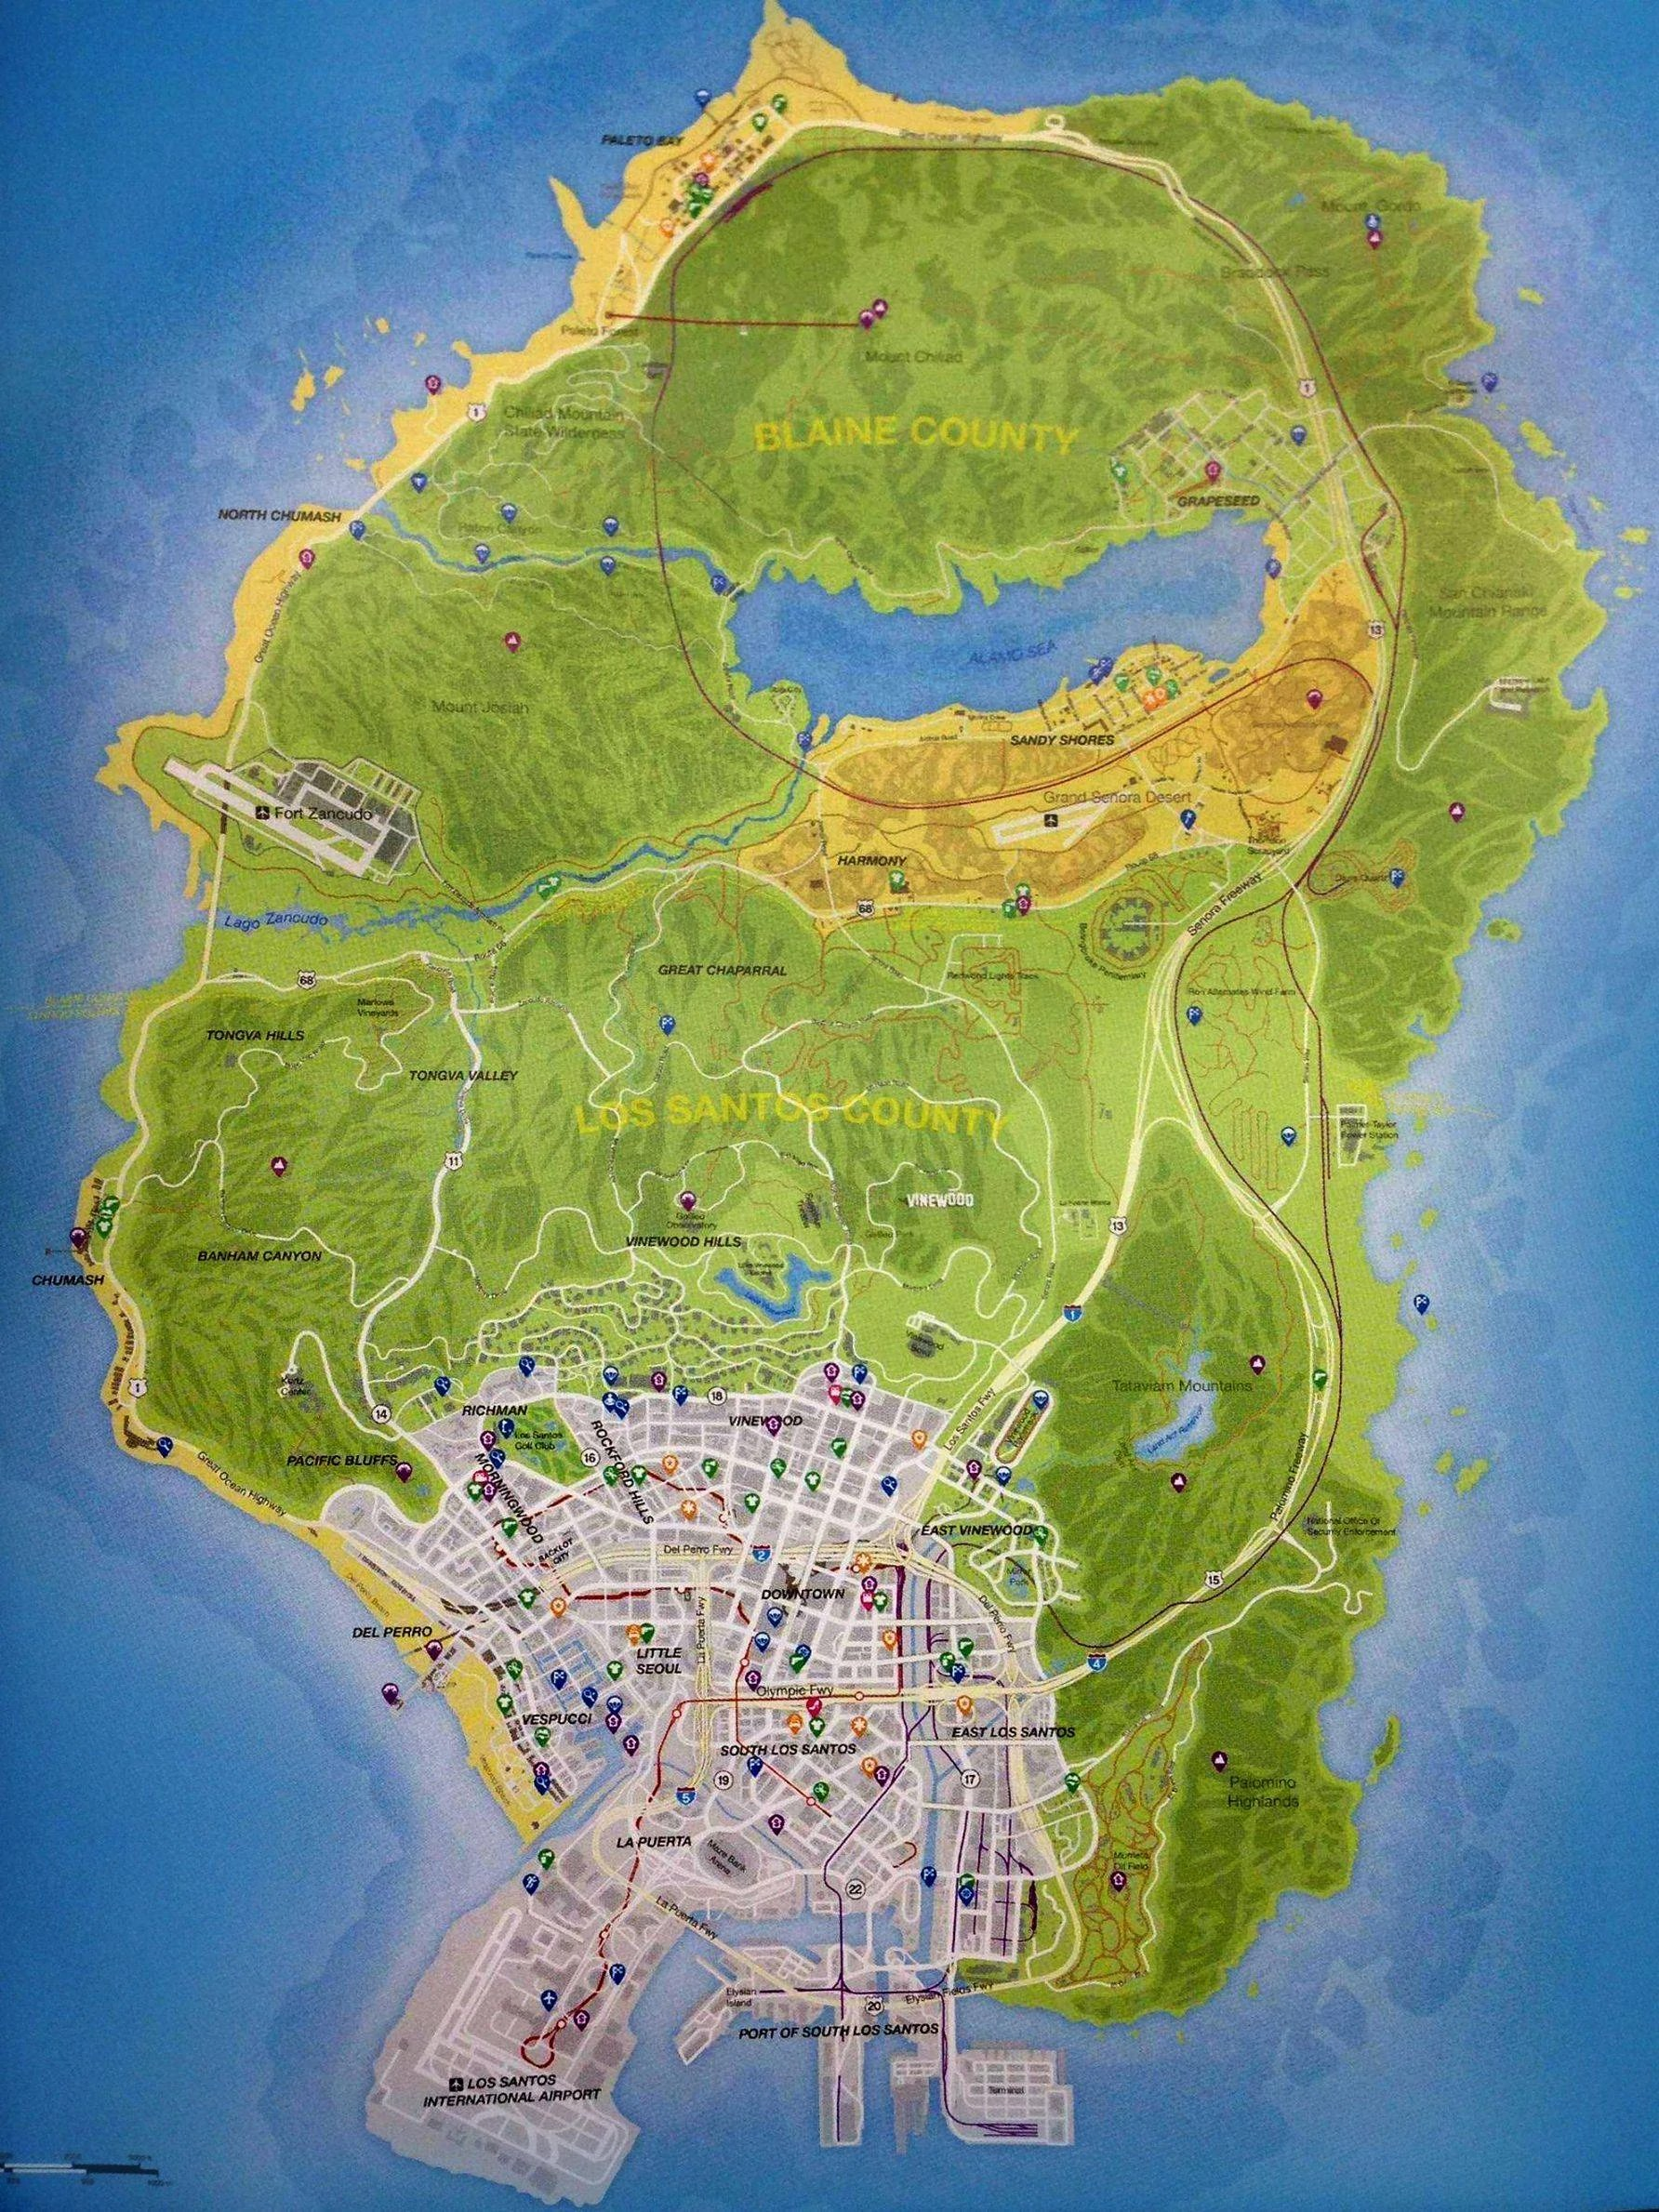 Gta V Map With Street Names : street, names, Street, Names, World, Atlas